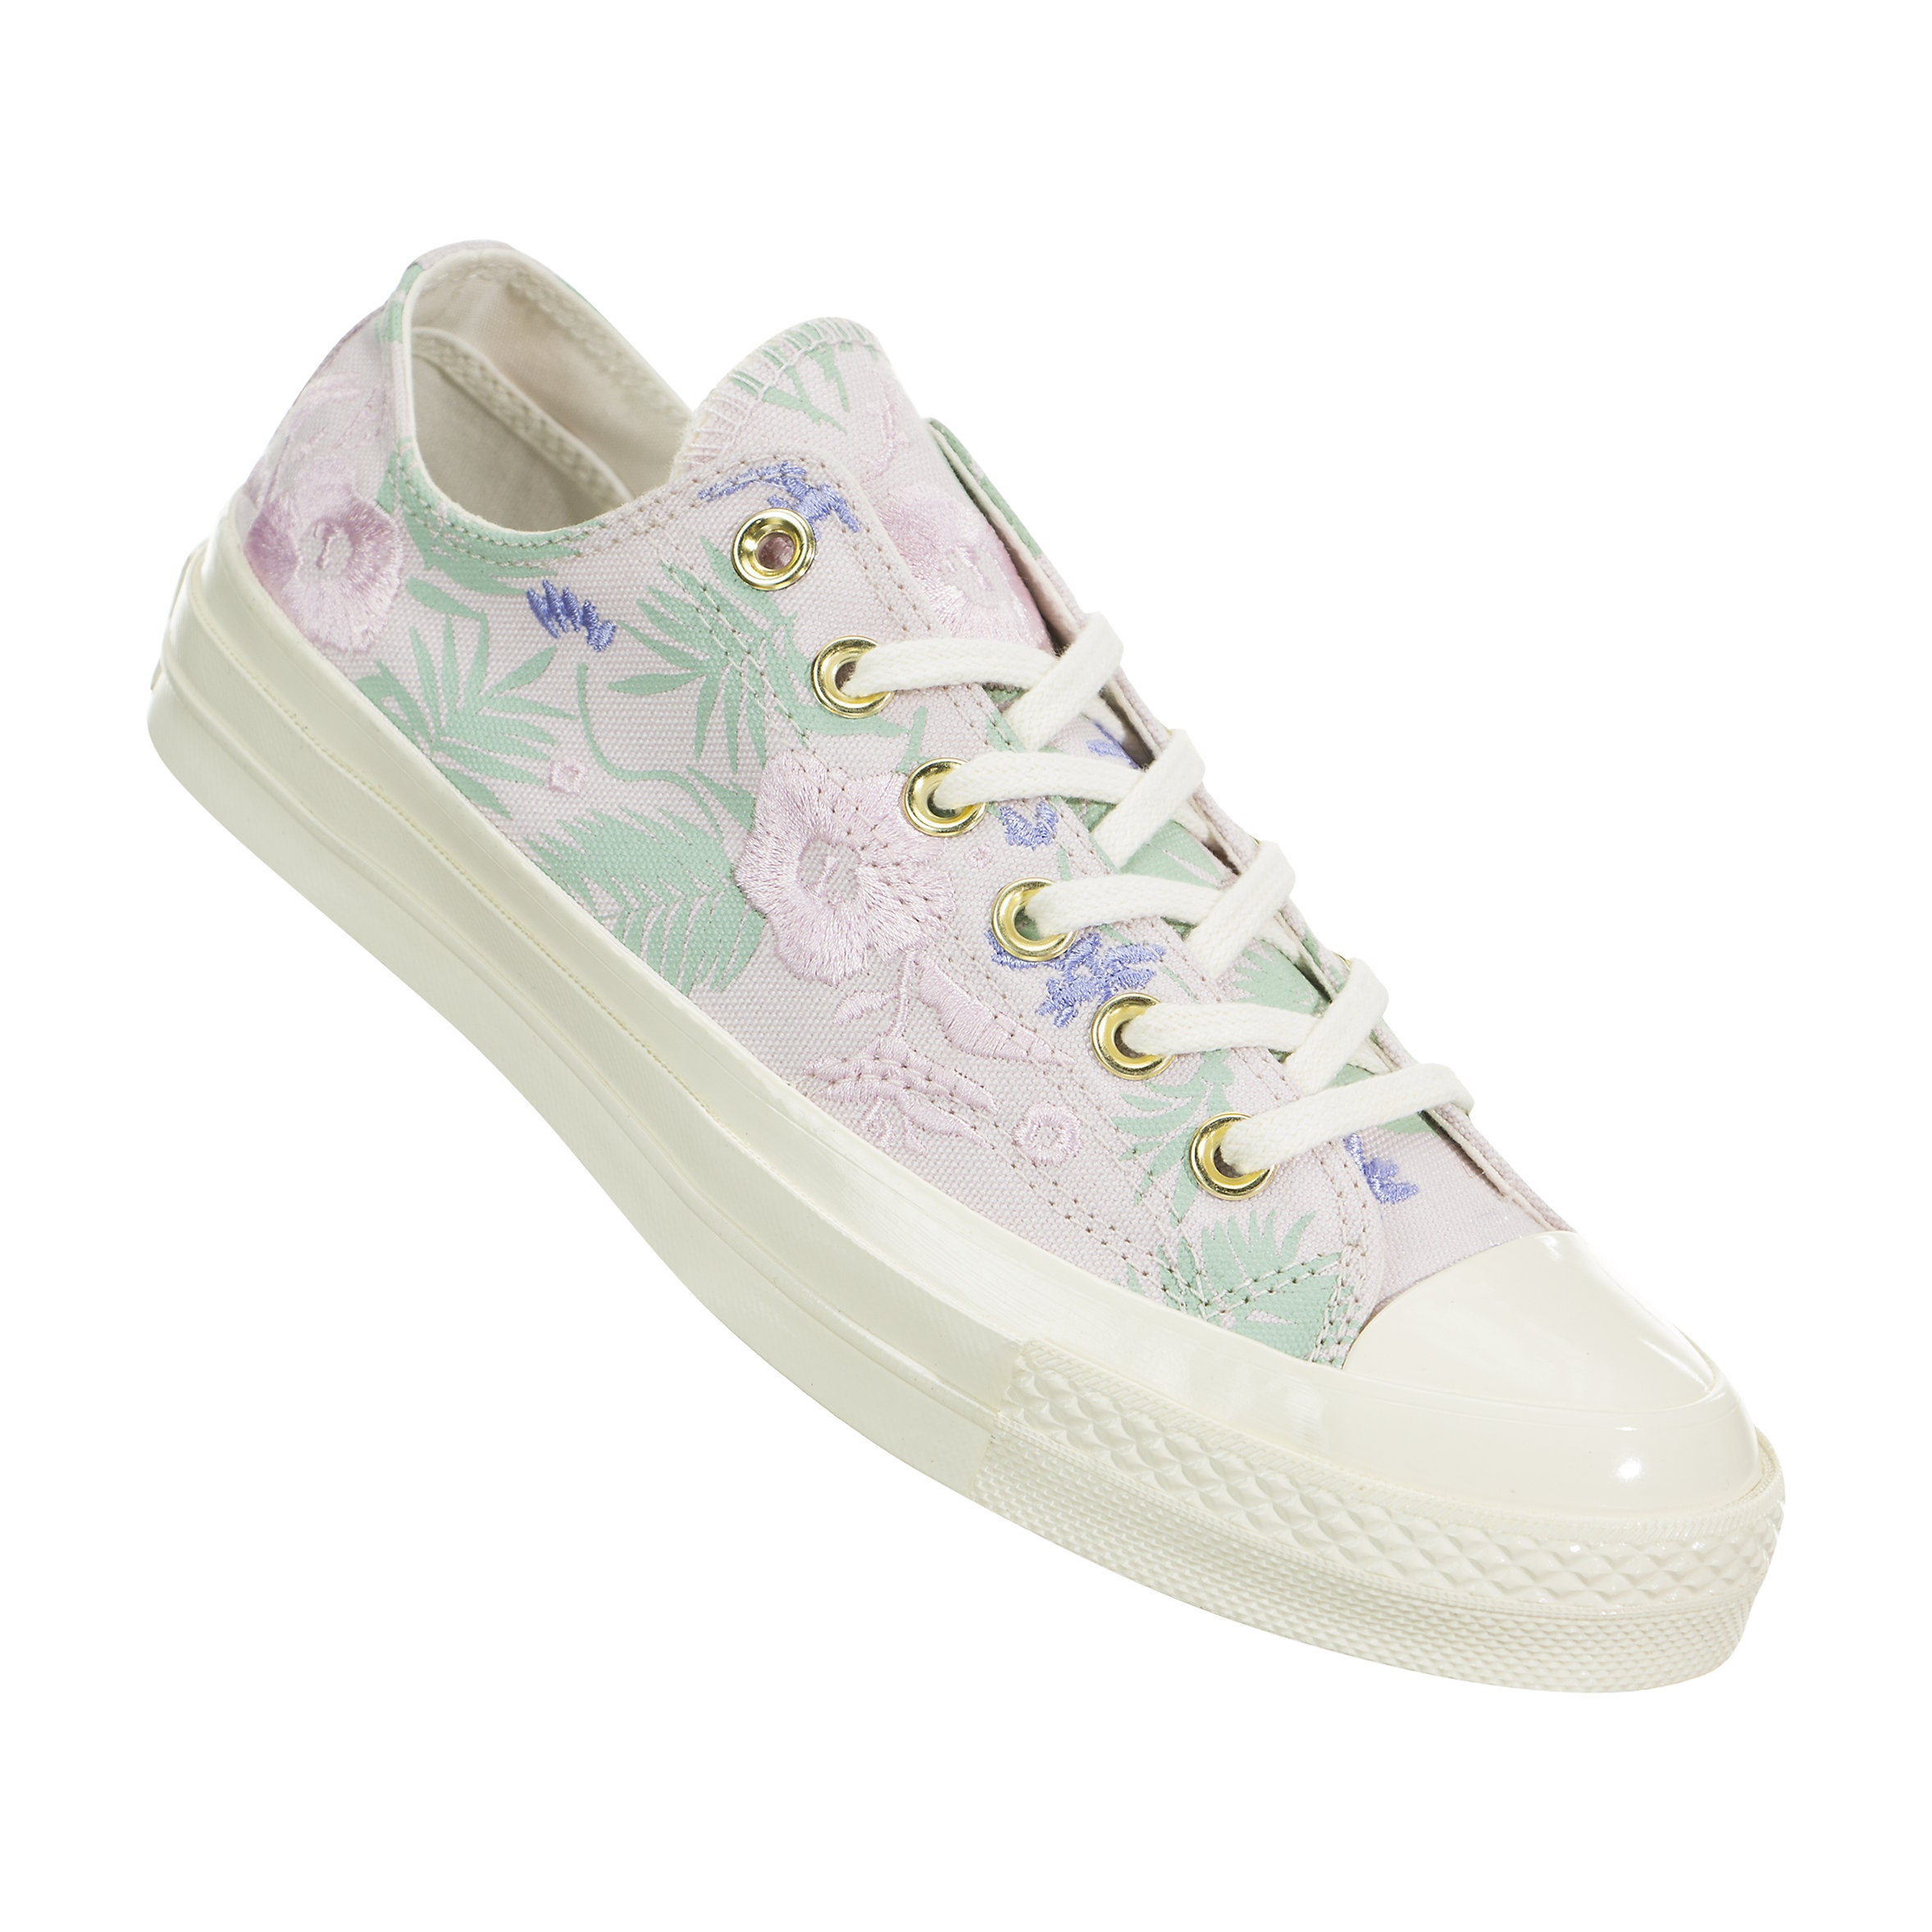 685d50a8fce5 Floral Converse 70s Low Top White Ivory Embroidery Palm Canvas w  Swarovski  Crystal Rhinestone Chuck Taylor All Star Wedding Sneakers Shoes